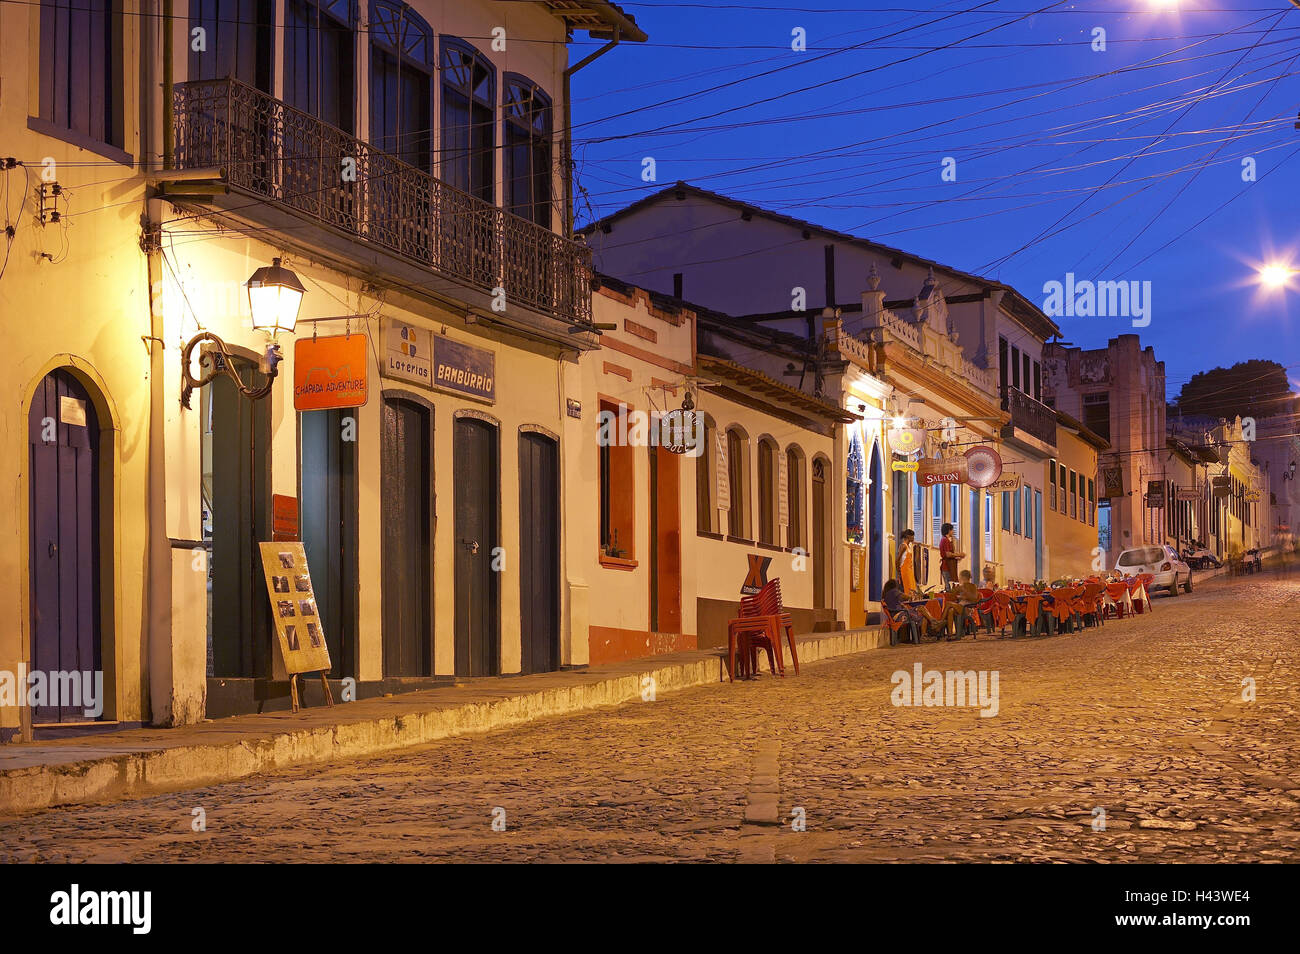 Brazil Bahia Lencois city hall square terrace lighting evening South America town destination space houses buildings architecture ... & Brazil Bahia Lencois city hall square terrace lighting evening ...